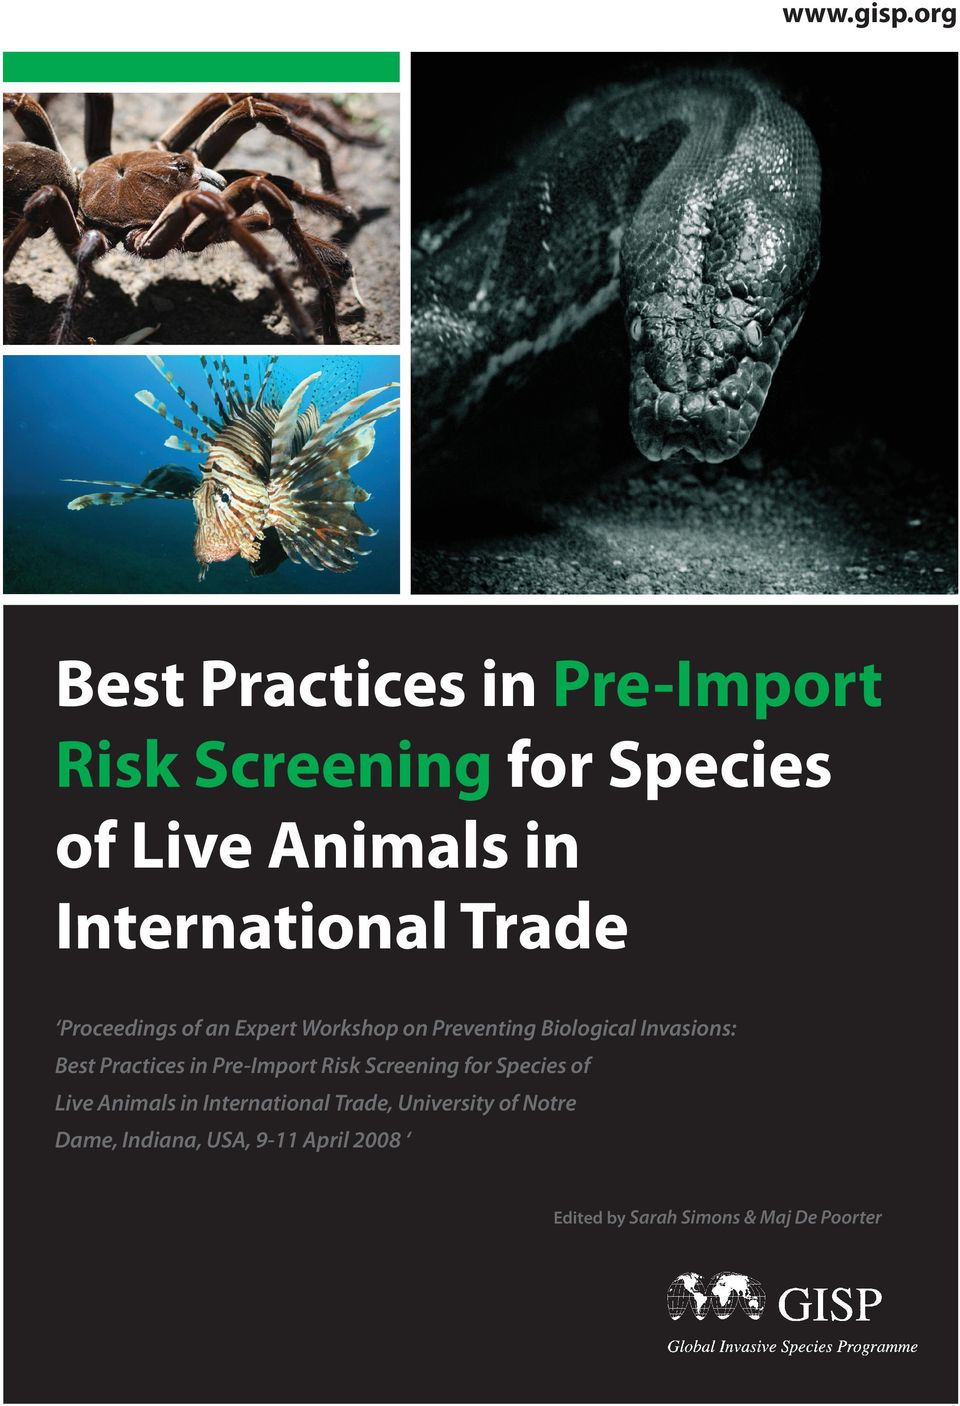 Trade Proceedings of an Expert Workshop on Preventing Biological Invasions: Best Practices